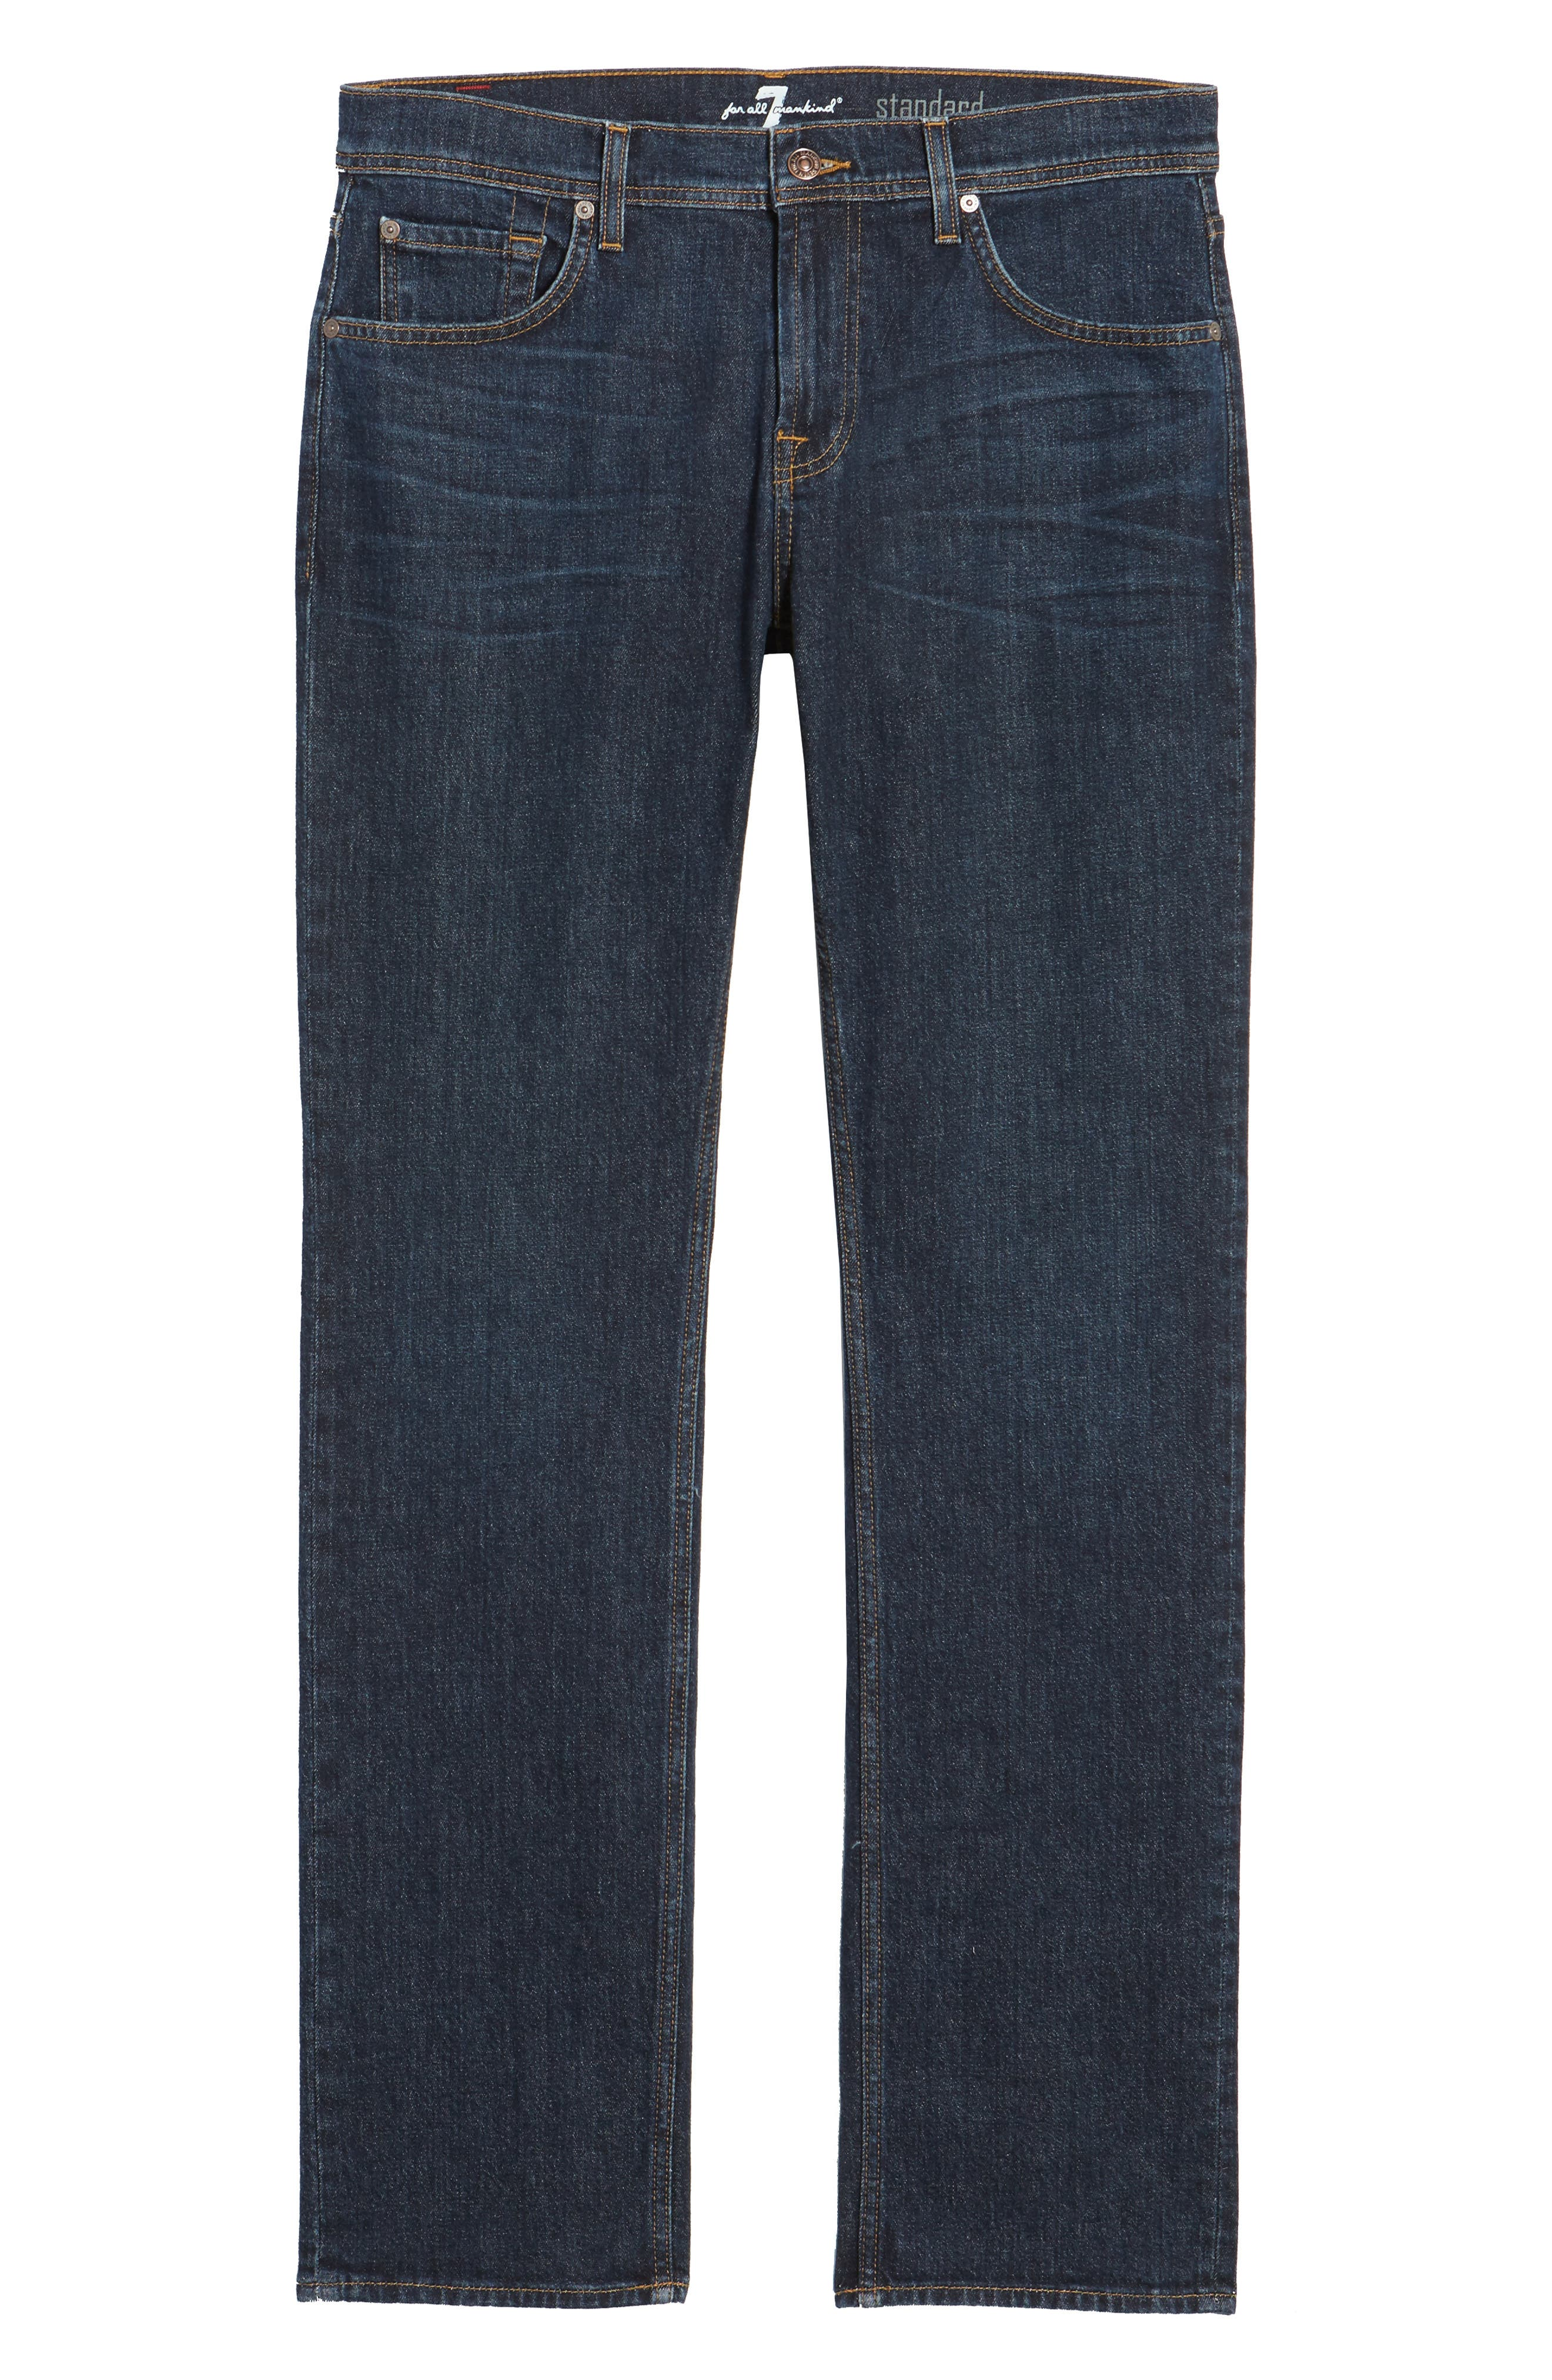 Standard Straight Leg Jeans,                             Alternate thumbnail 6, color,                             402